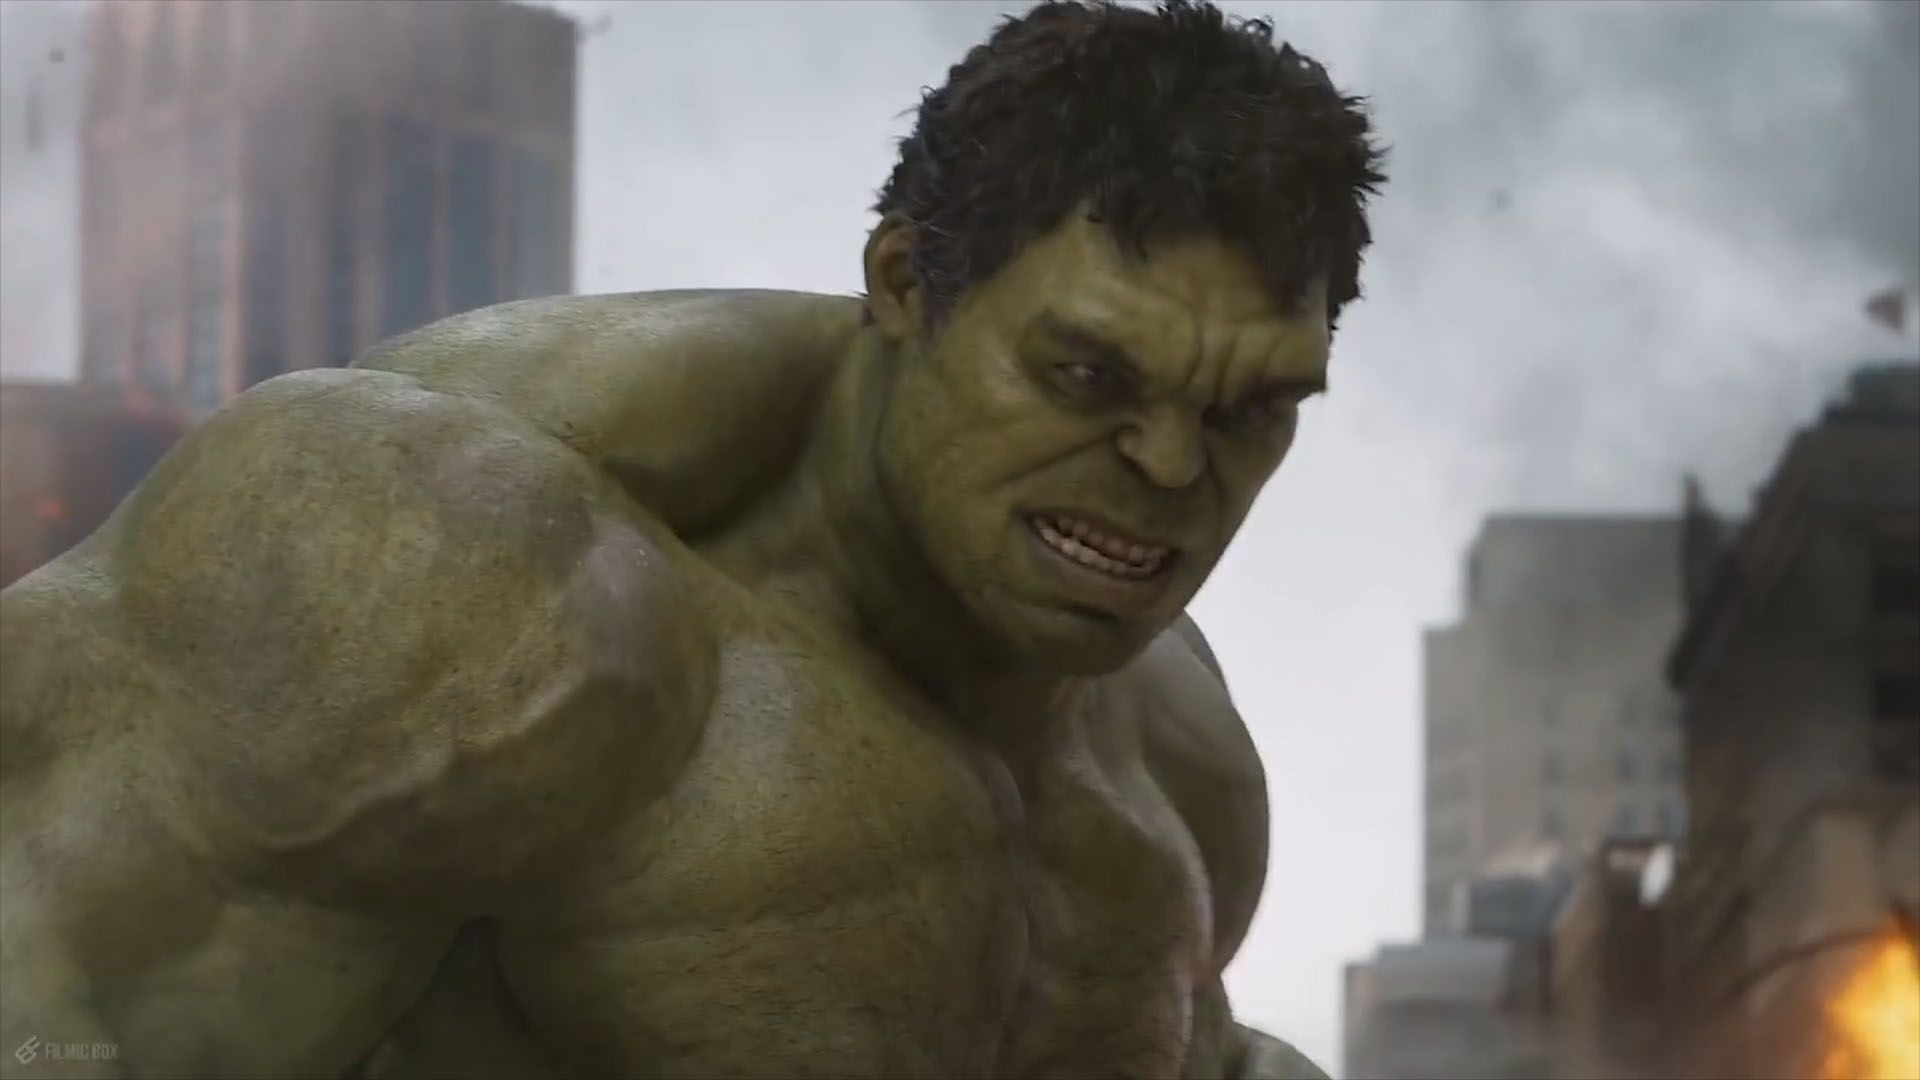 The Incredible Hulk's Exact Strength Has Been a Mystery — Until Now